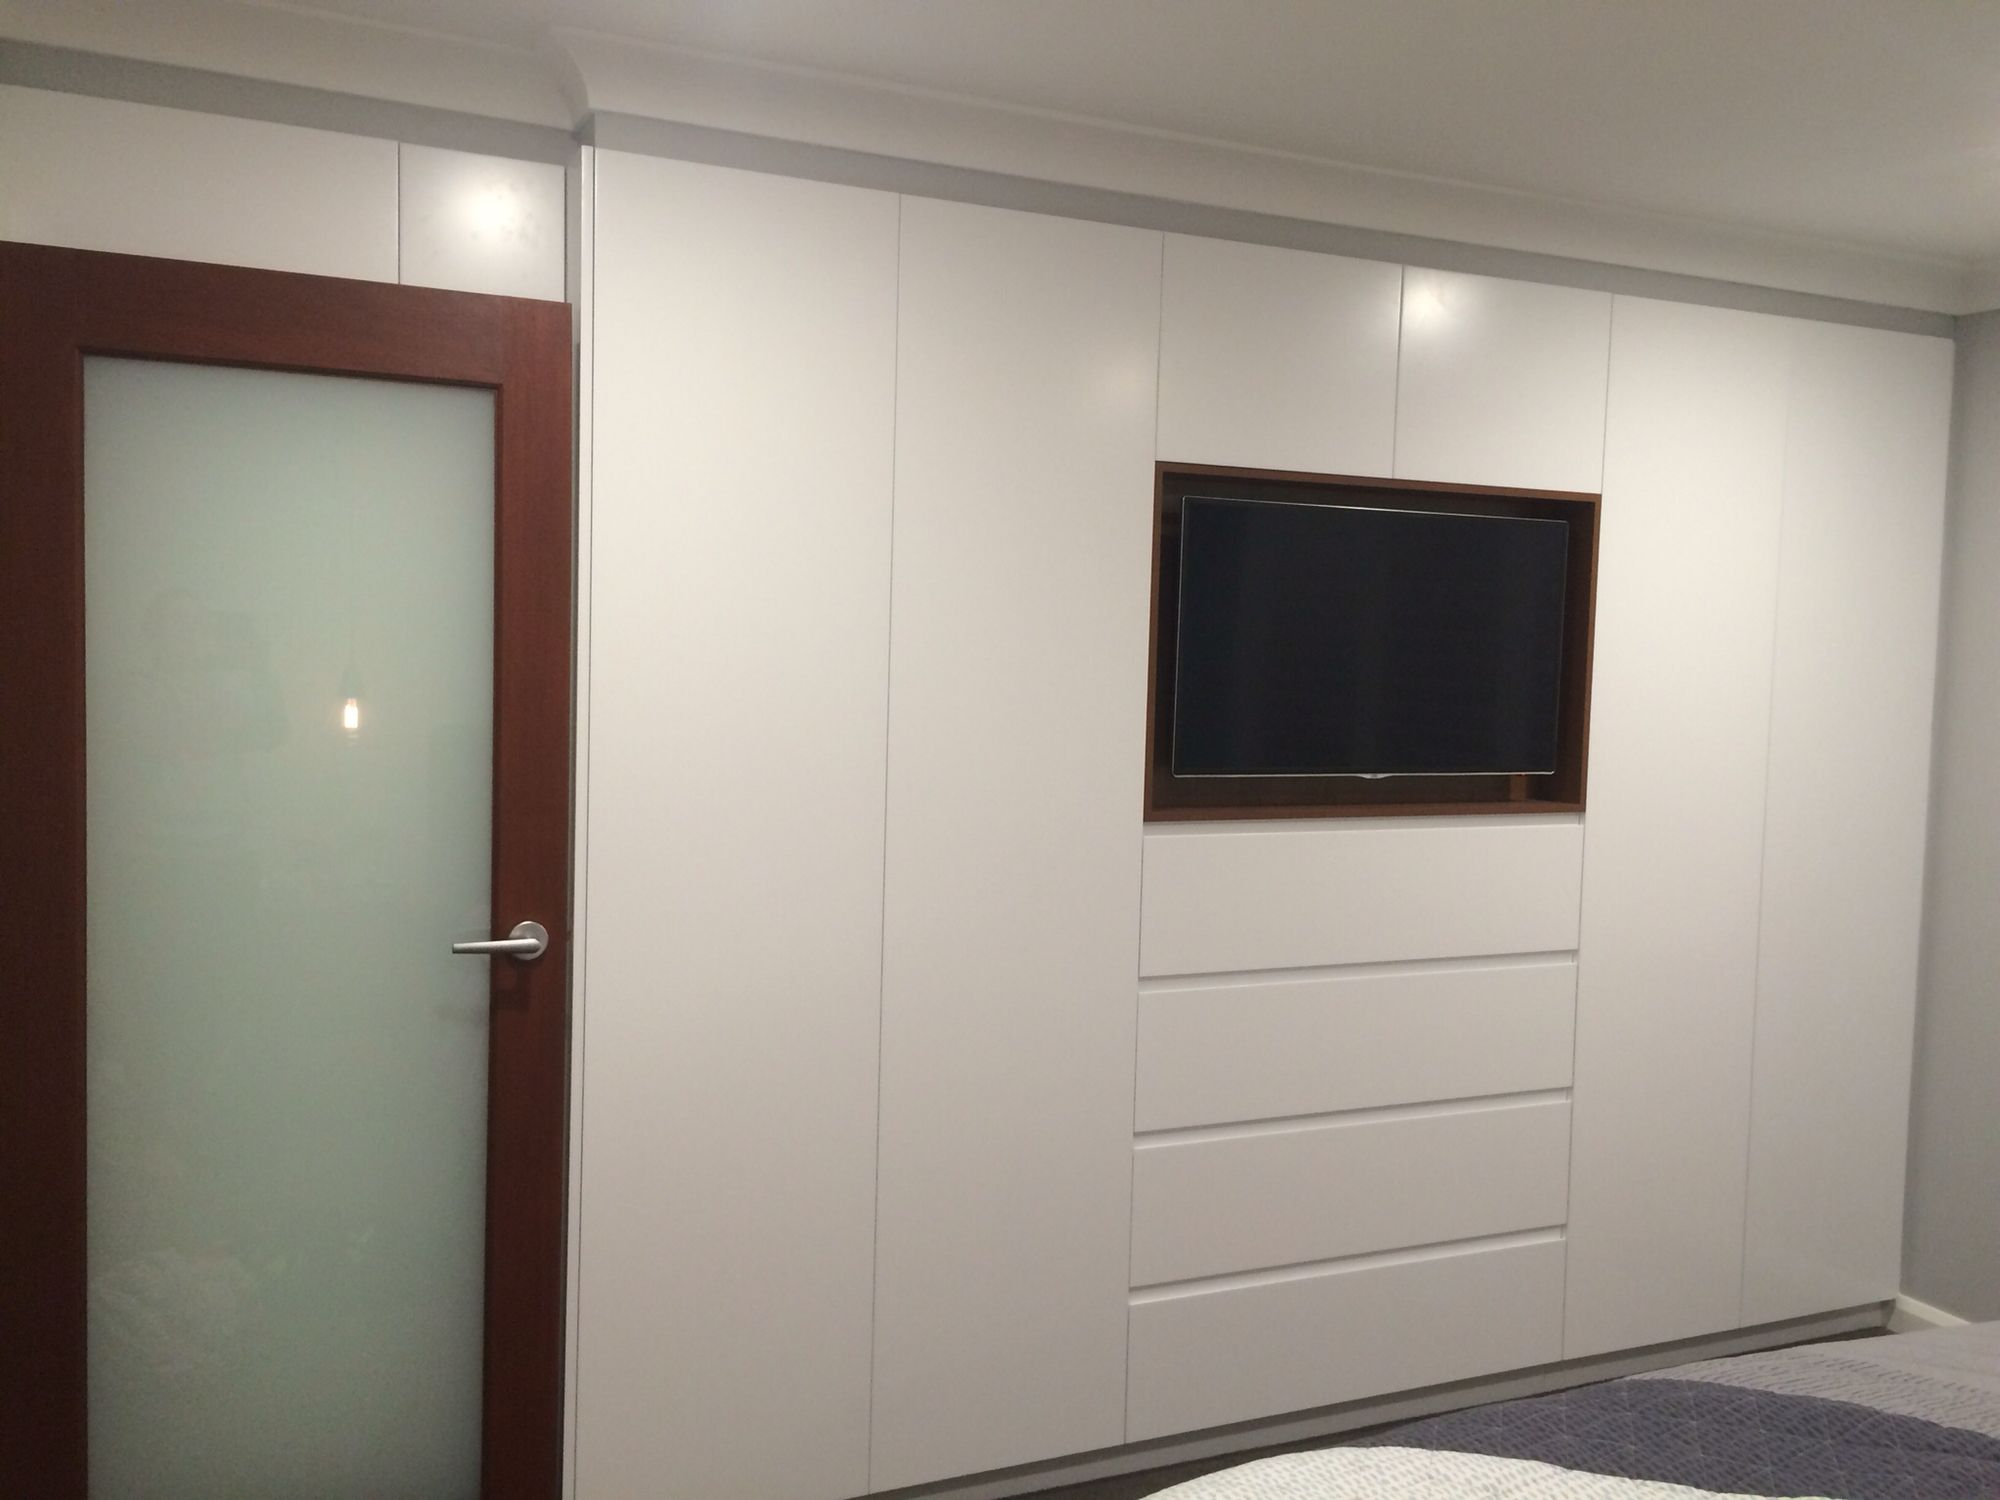 Bedroom with tv and closet - White Built In Wardrobe With Walnut Timer Inset For Tv